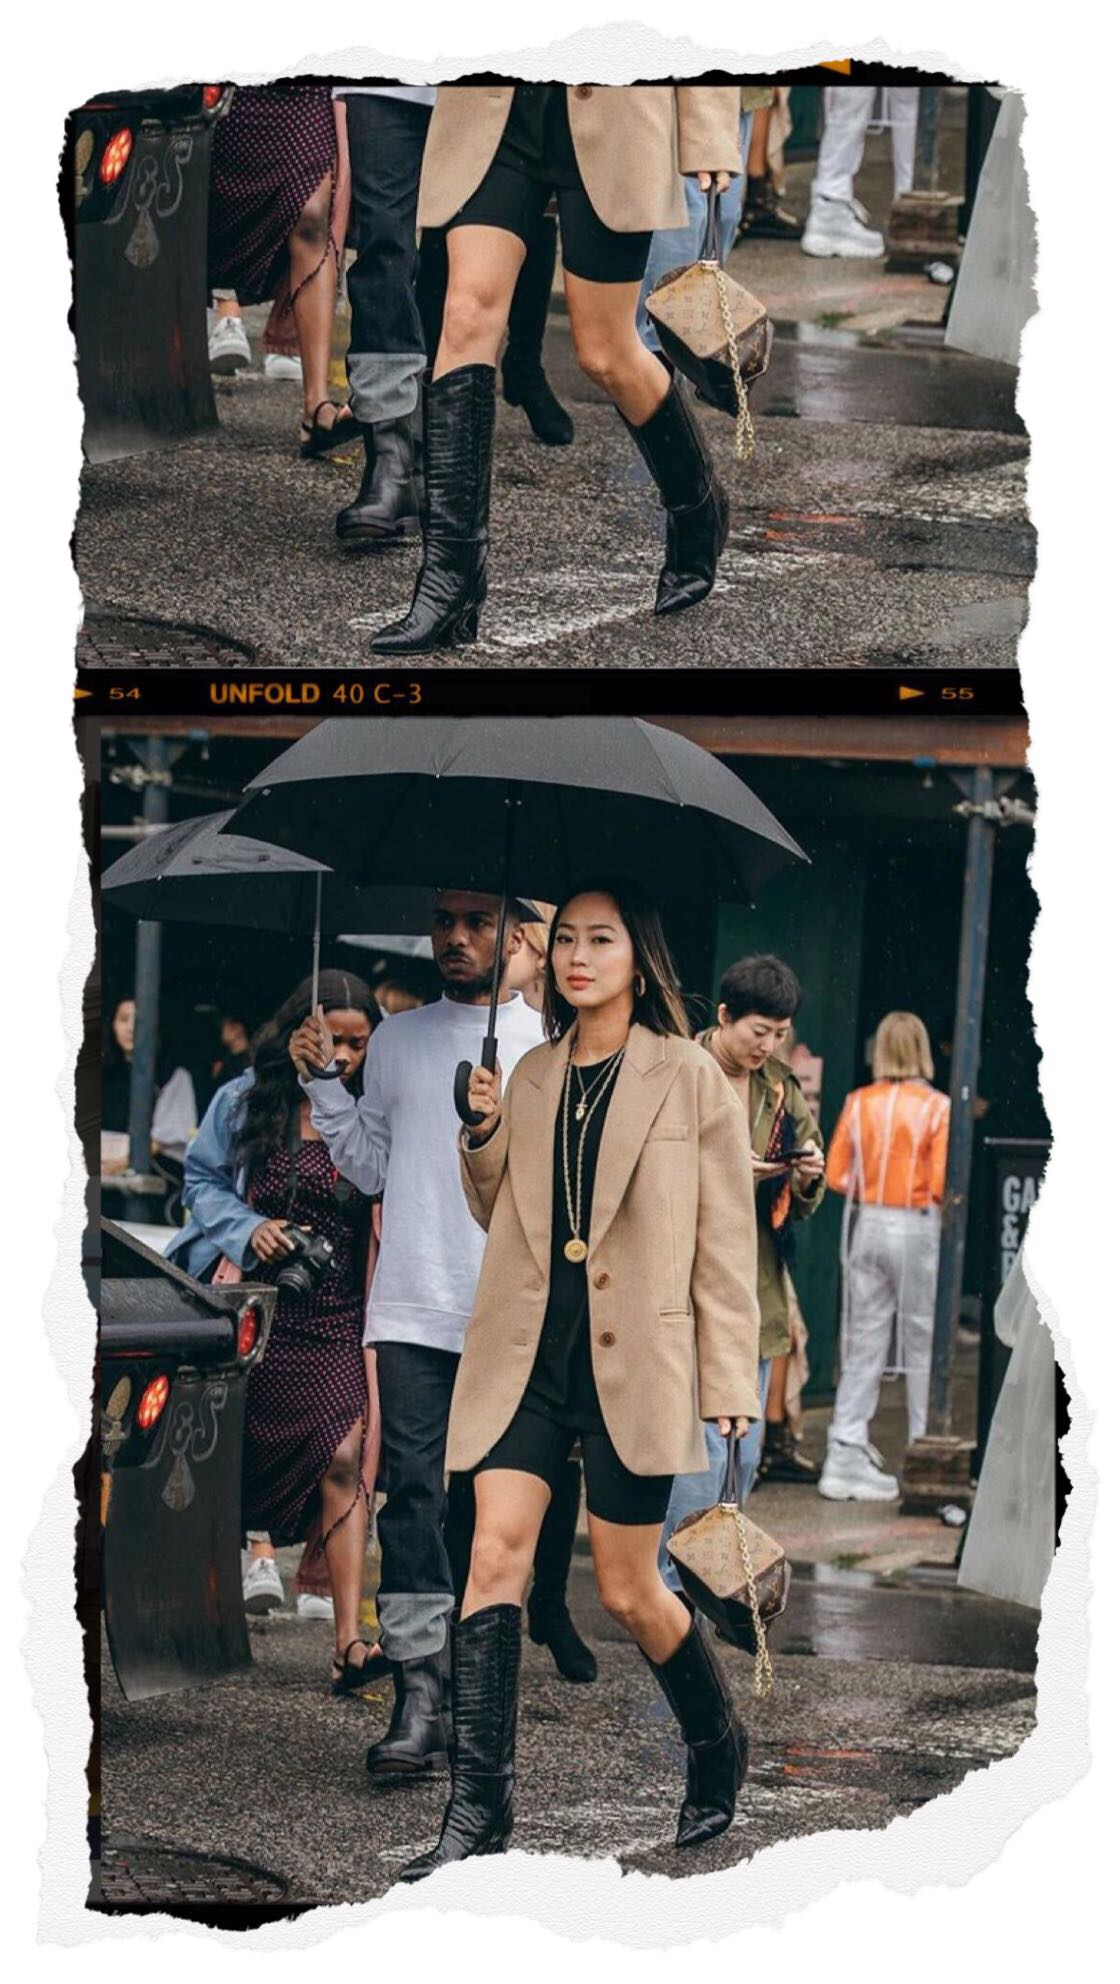 NFW Street Style - Aimee Song wearing Cowboy Boots